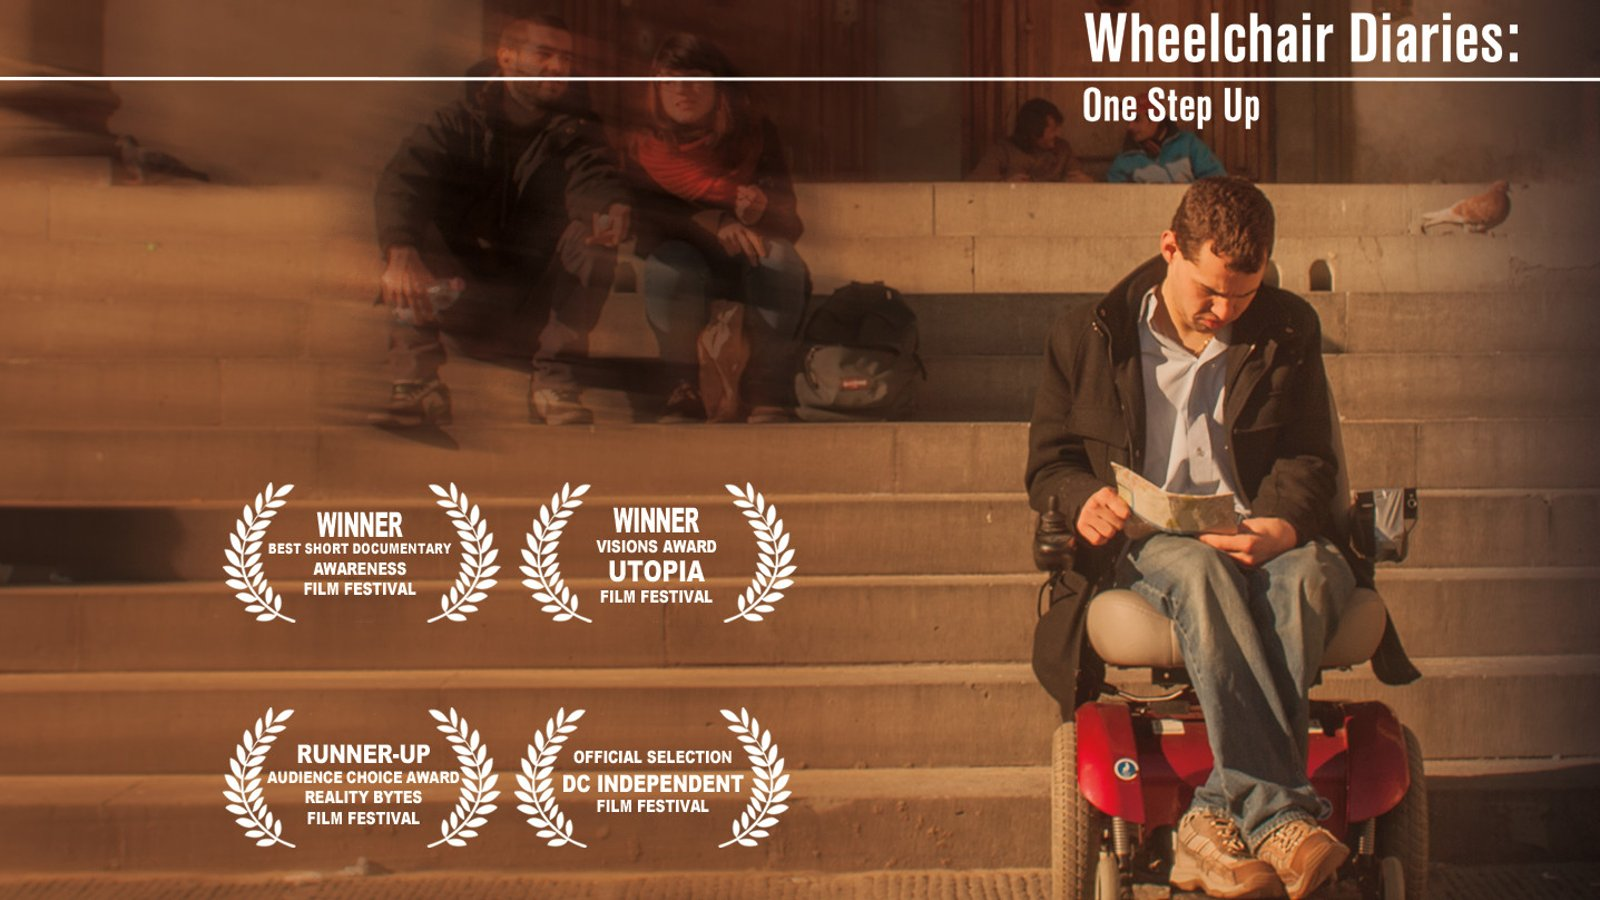 Wheelchair Diaries: One Step Up - An Exploration of the Lack of Handicapped Accessibility in Europe